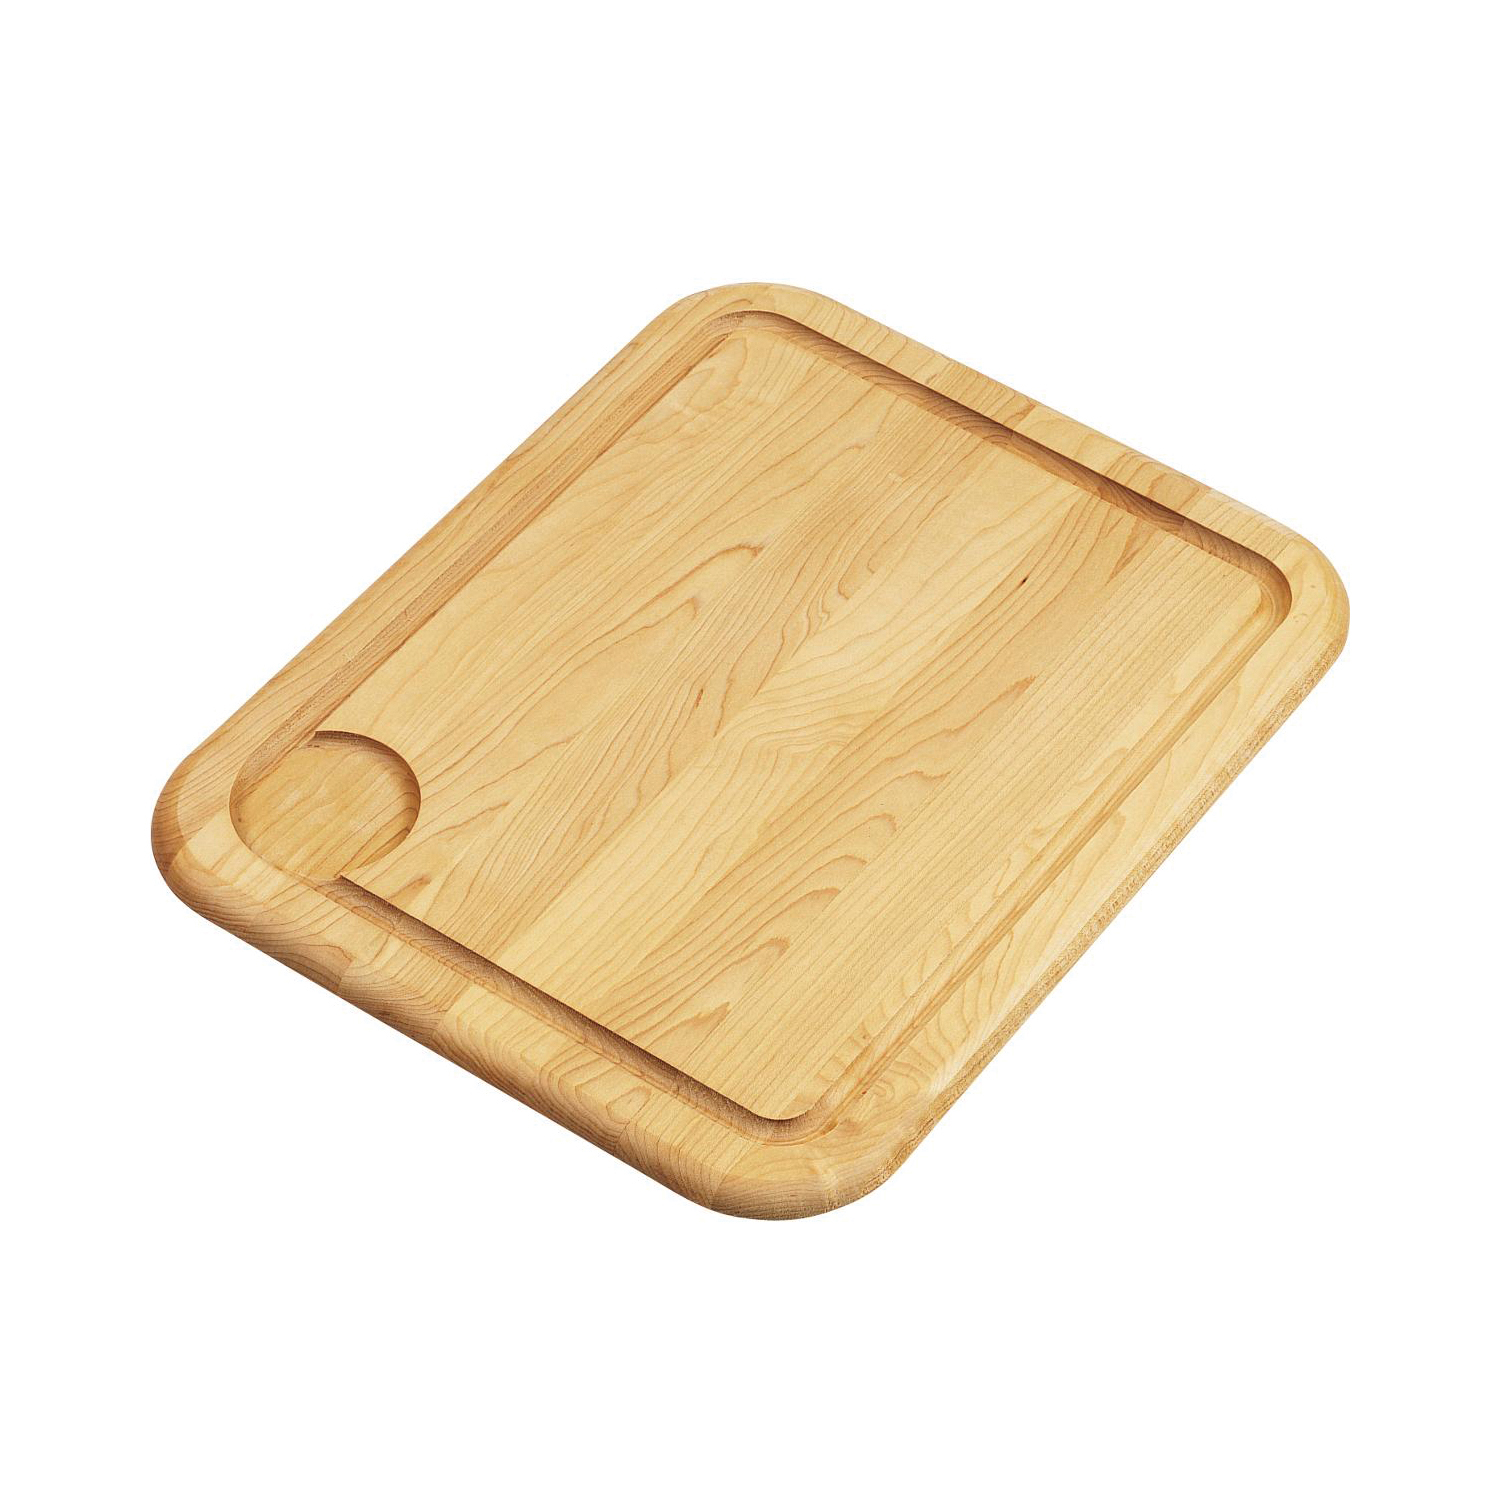 Elkay CB1713 Cutting Board, 13-1/2 in L x 17 in W x 1 in THK, Hardwood